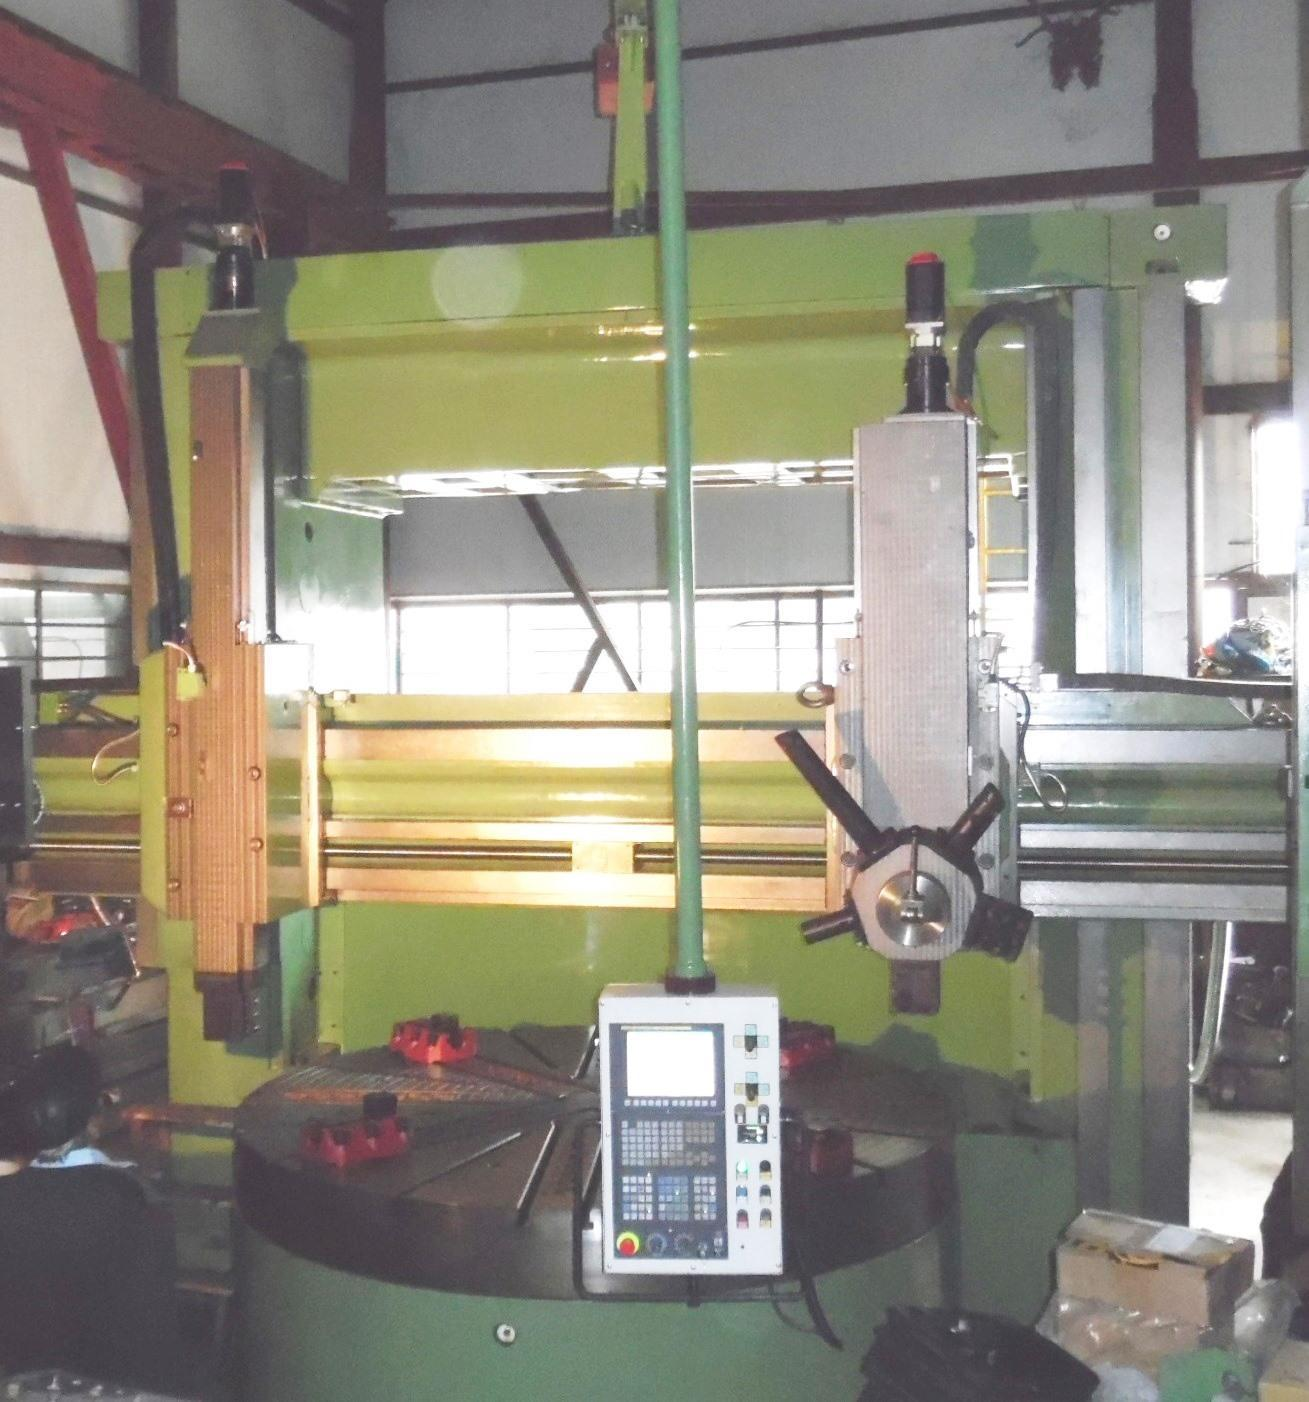 Titan Model SC -25/33 CNC Vertical Boring Mill, U-4091